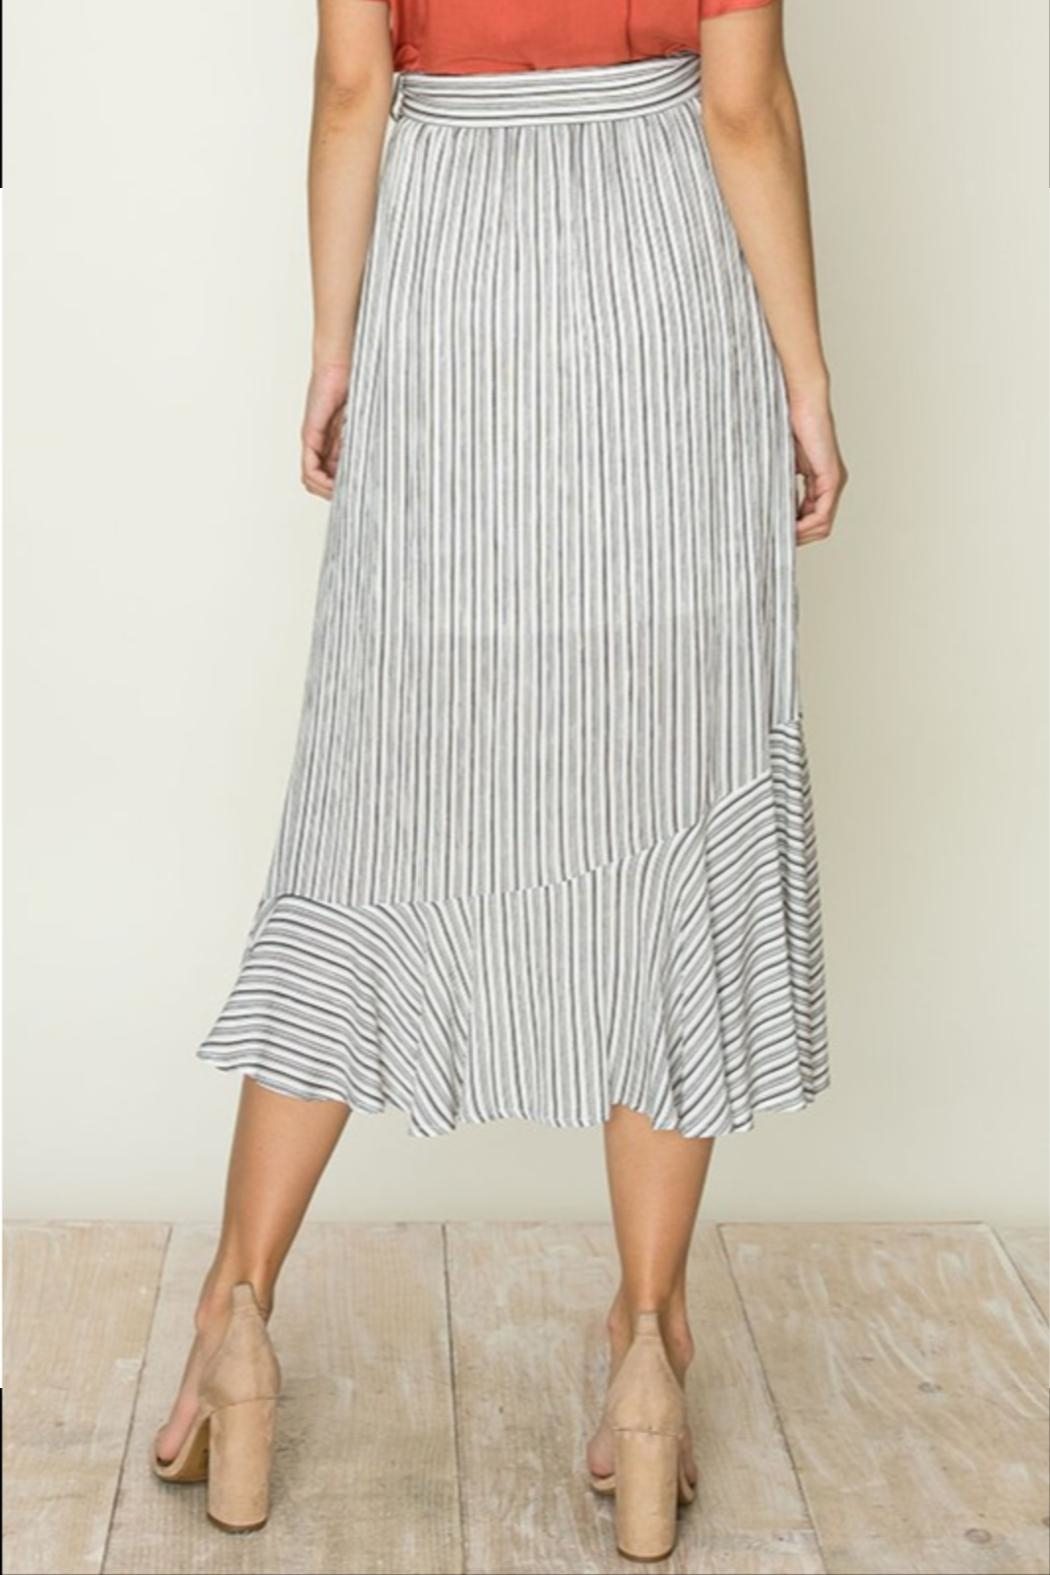 HYFVE High-Low Ruffle Skirt - Side Cropped Image